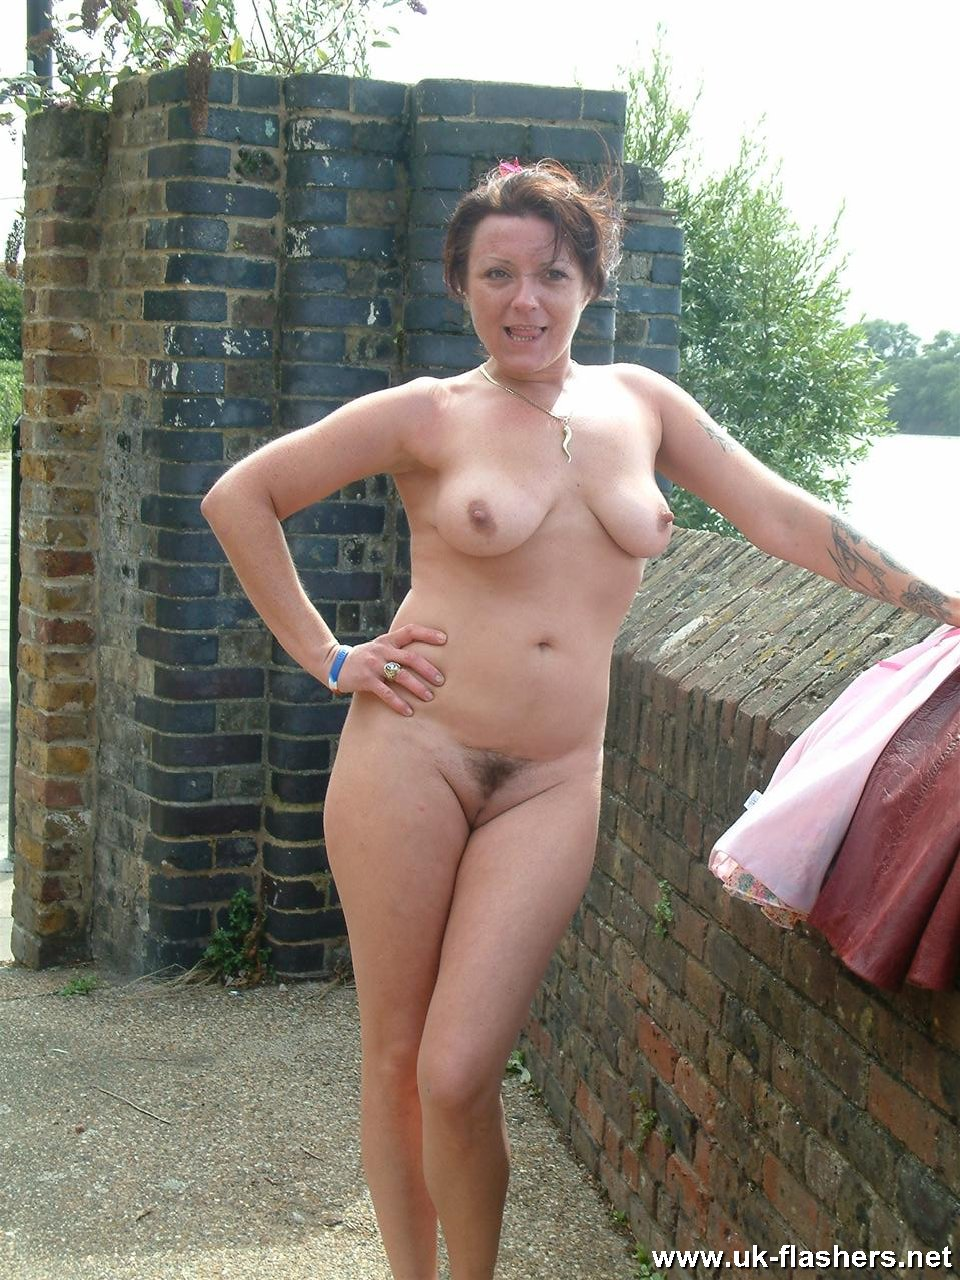 scottish female nude pics